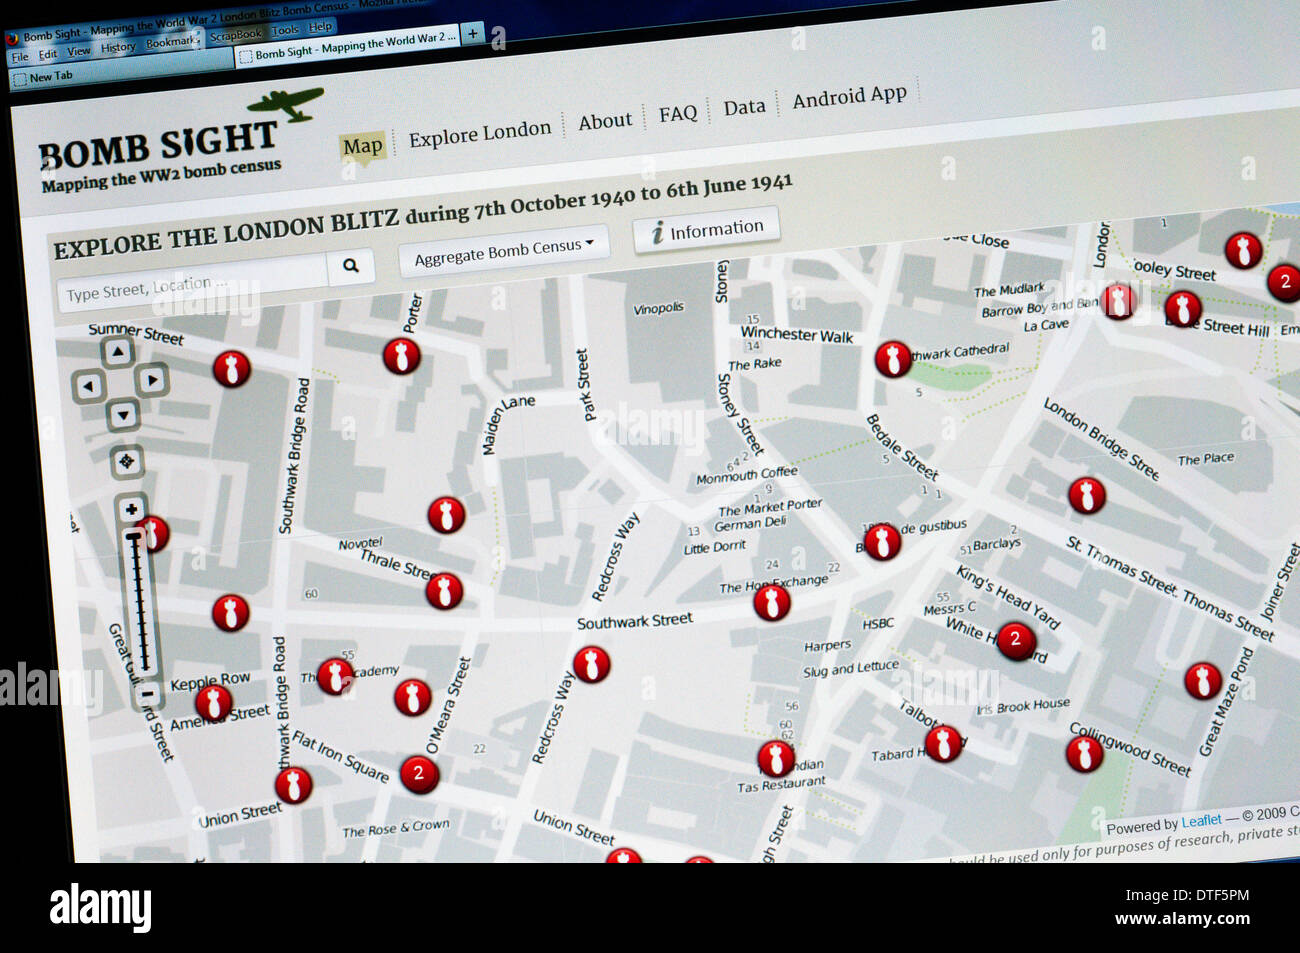 The home page of the Bomb Sight web site - mapping the location of the bombs that fell on London during the Second World War. - Stock Image